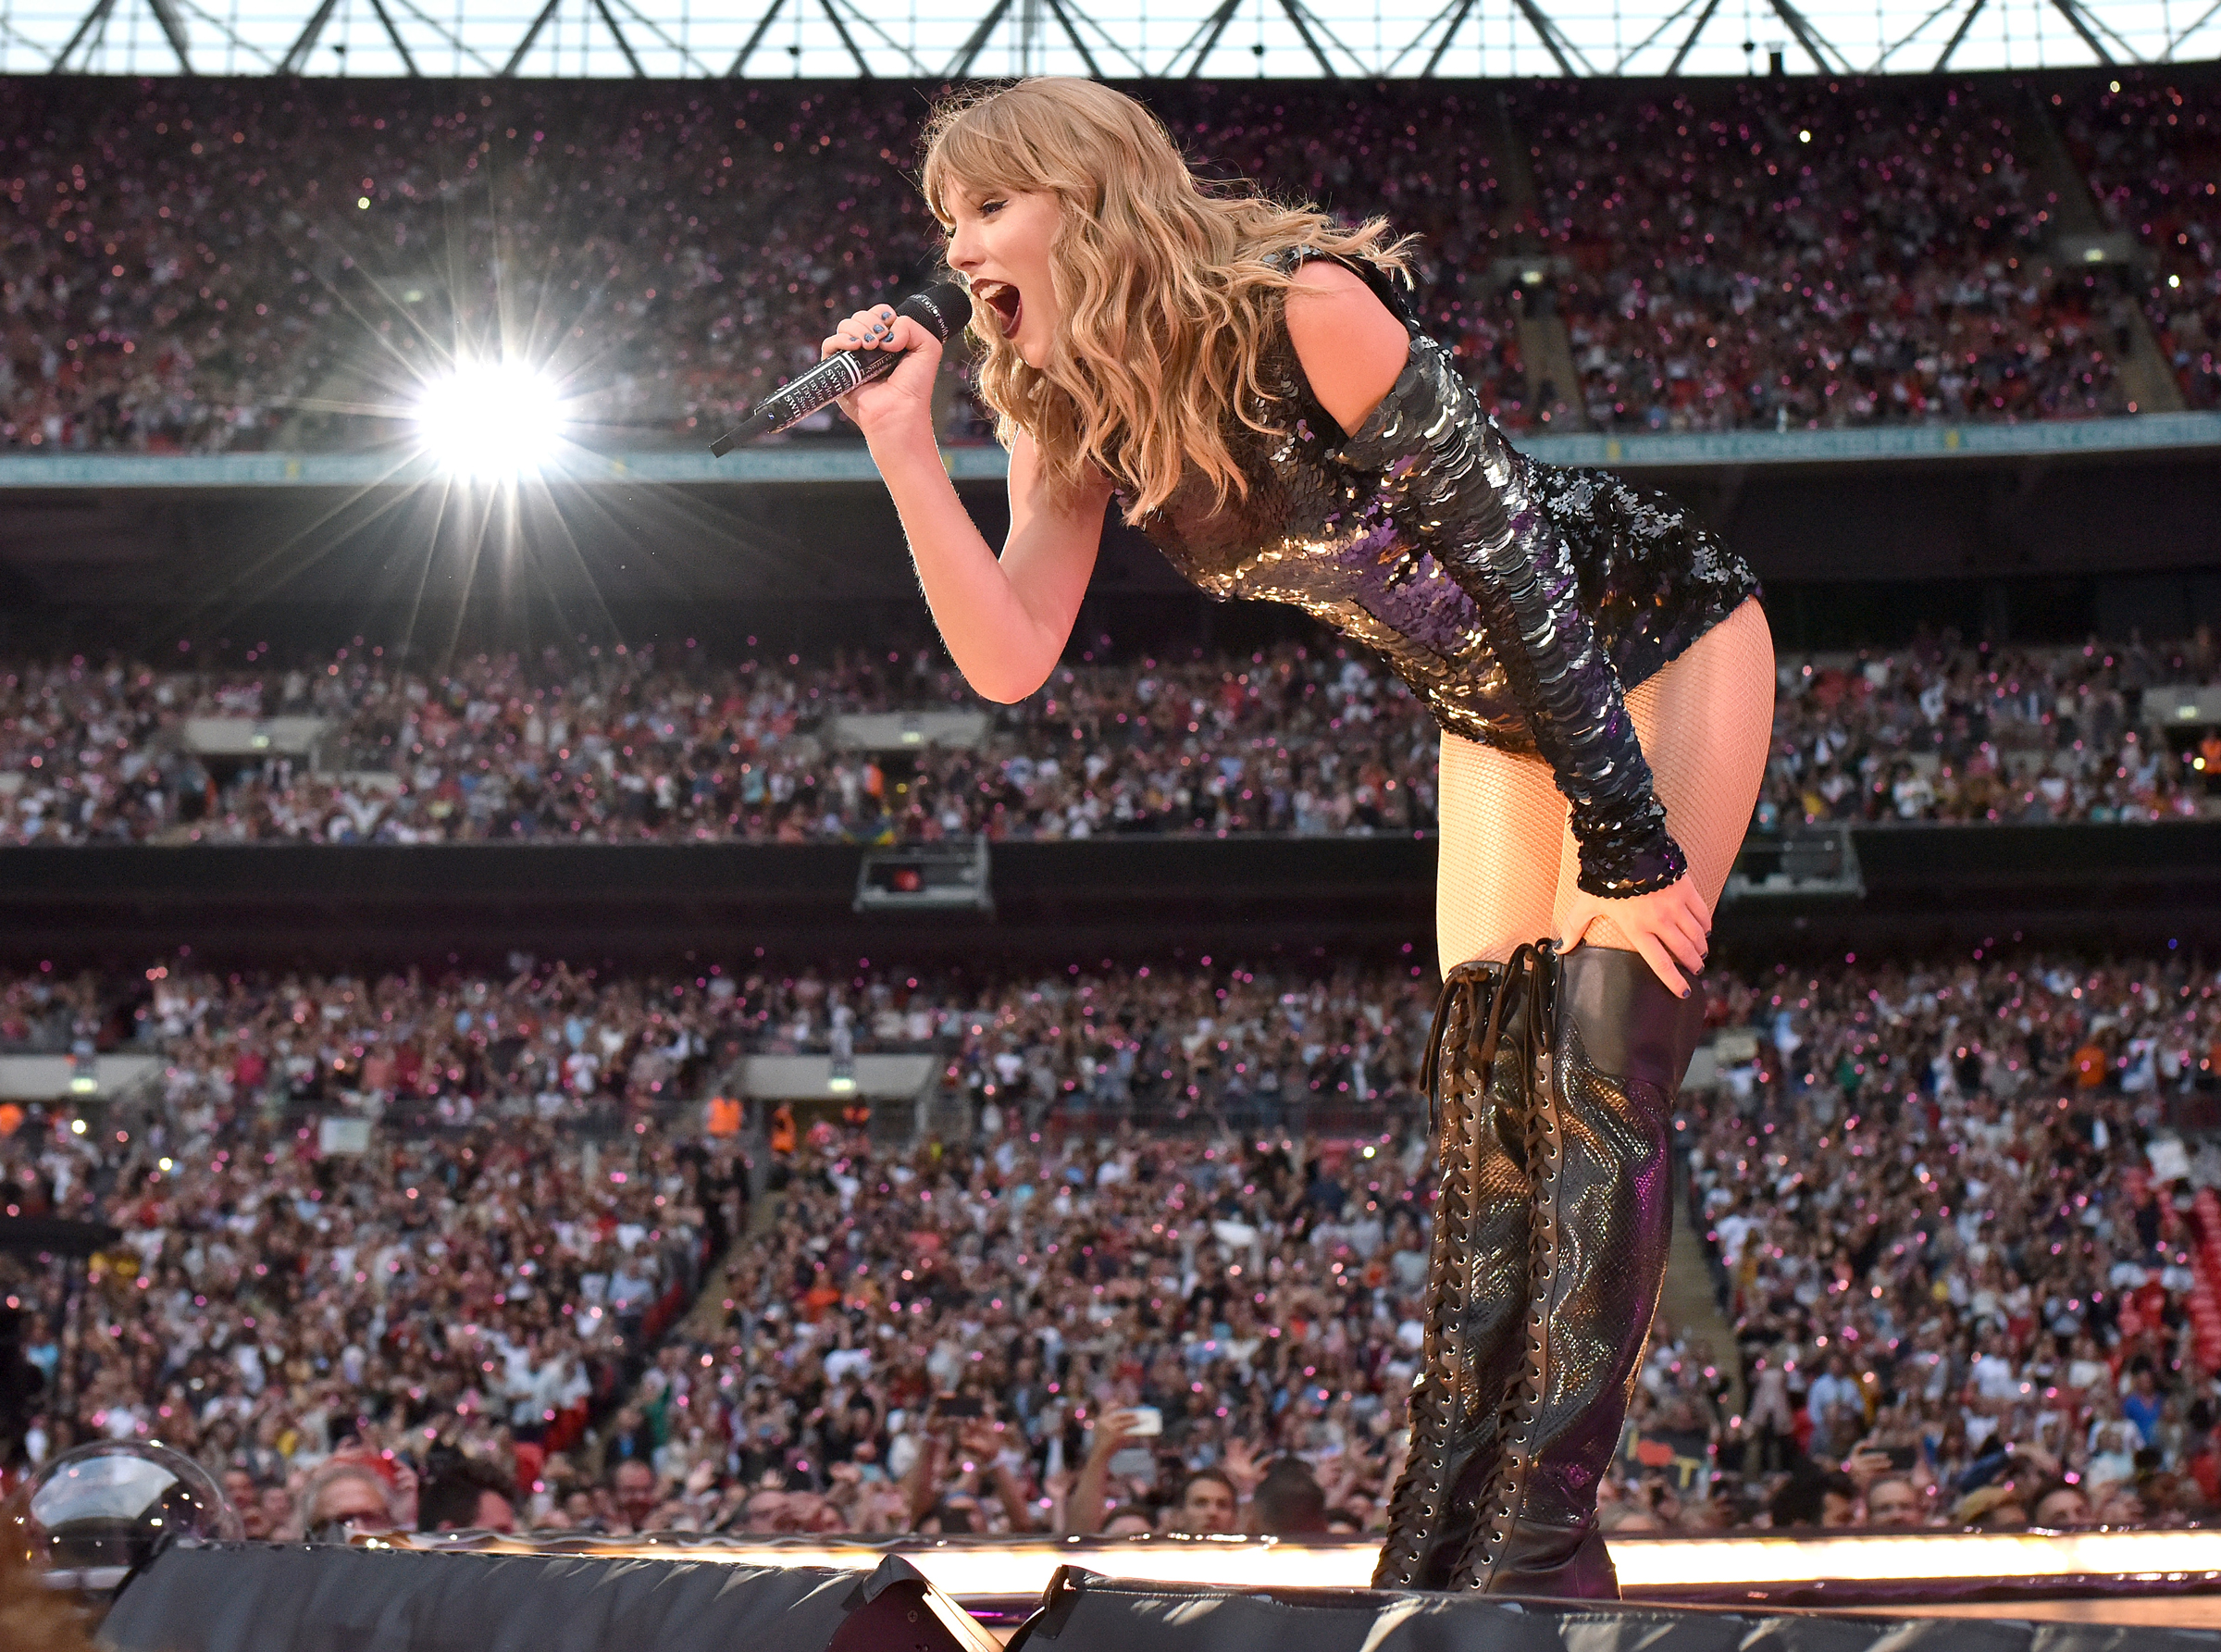 LONDON, ENGLAND - JUNE 23: Taylor Swift performs on stage during the reputation Stadium Tour at Wembley Stadium on June 23, 2018 in London, England. (Photo by Gareth Cattermole/TAS18/Getty Images for TAS)